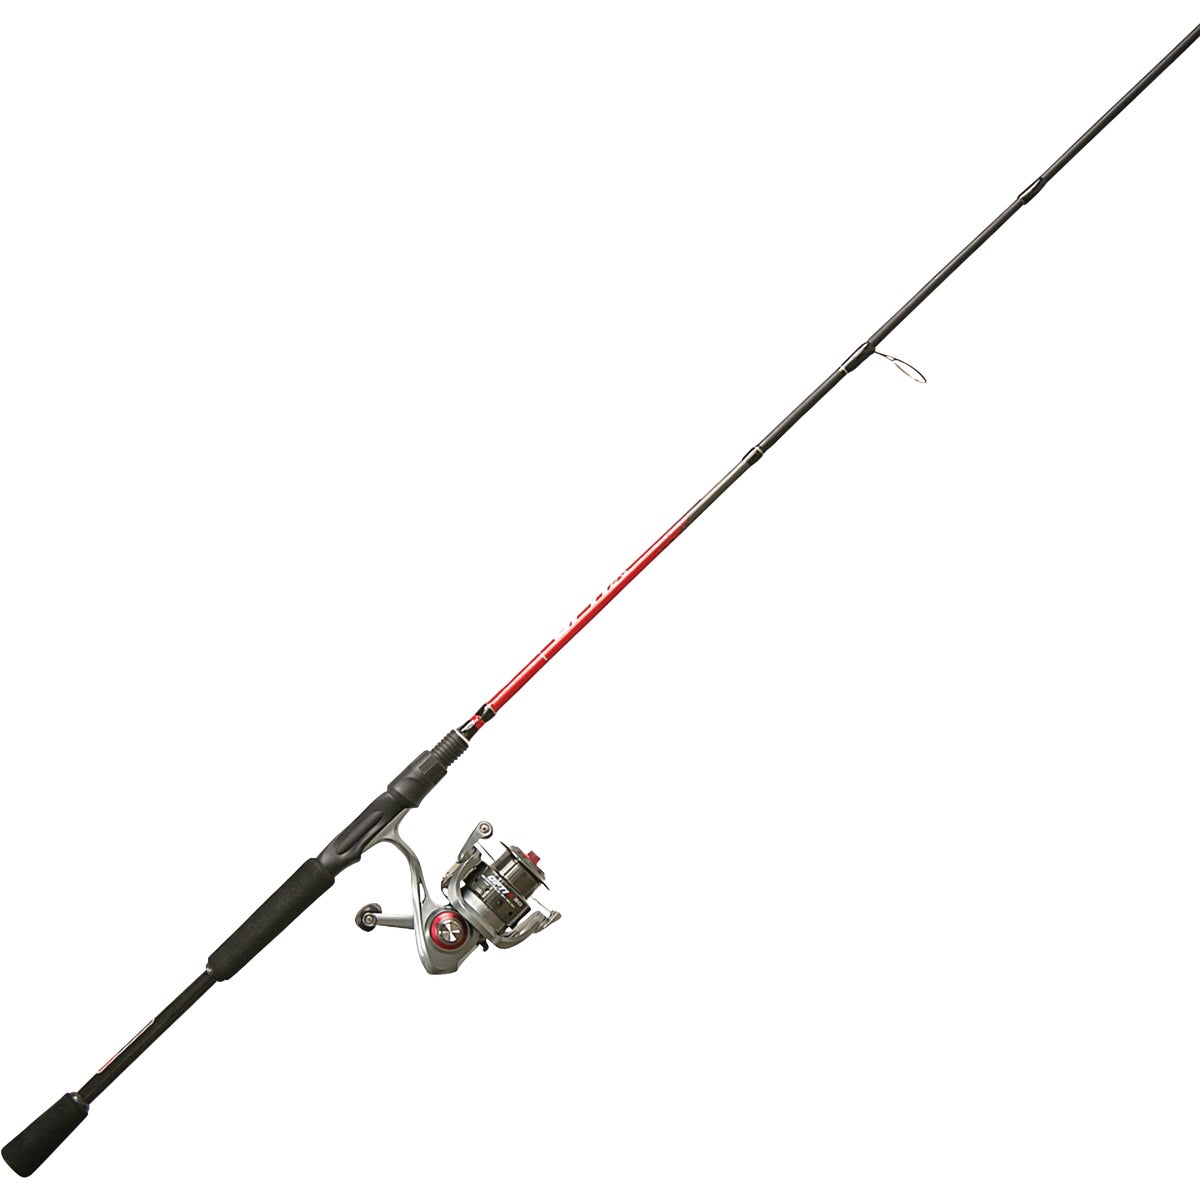 "6'6"" SPINNING ROD & REEL - OP3066MB by Zebco"